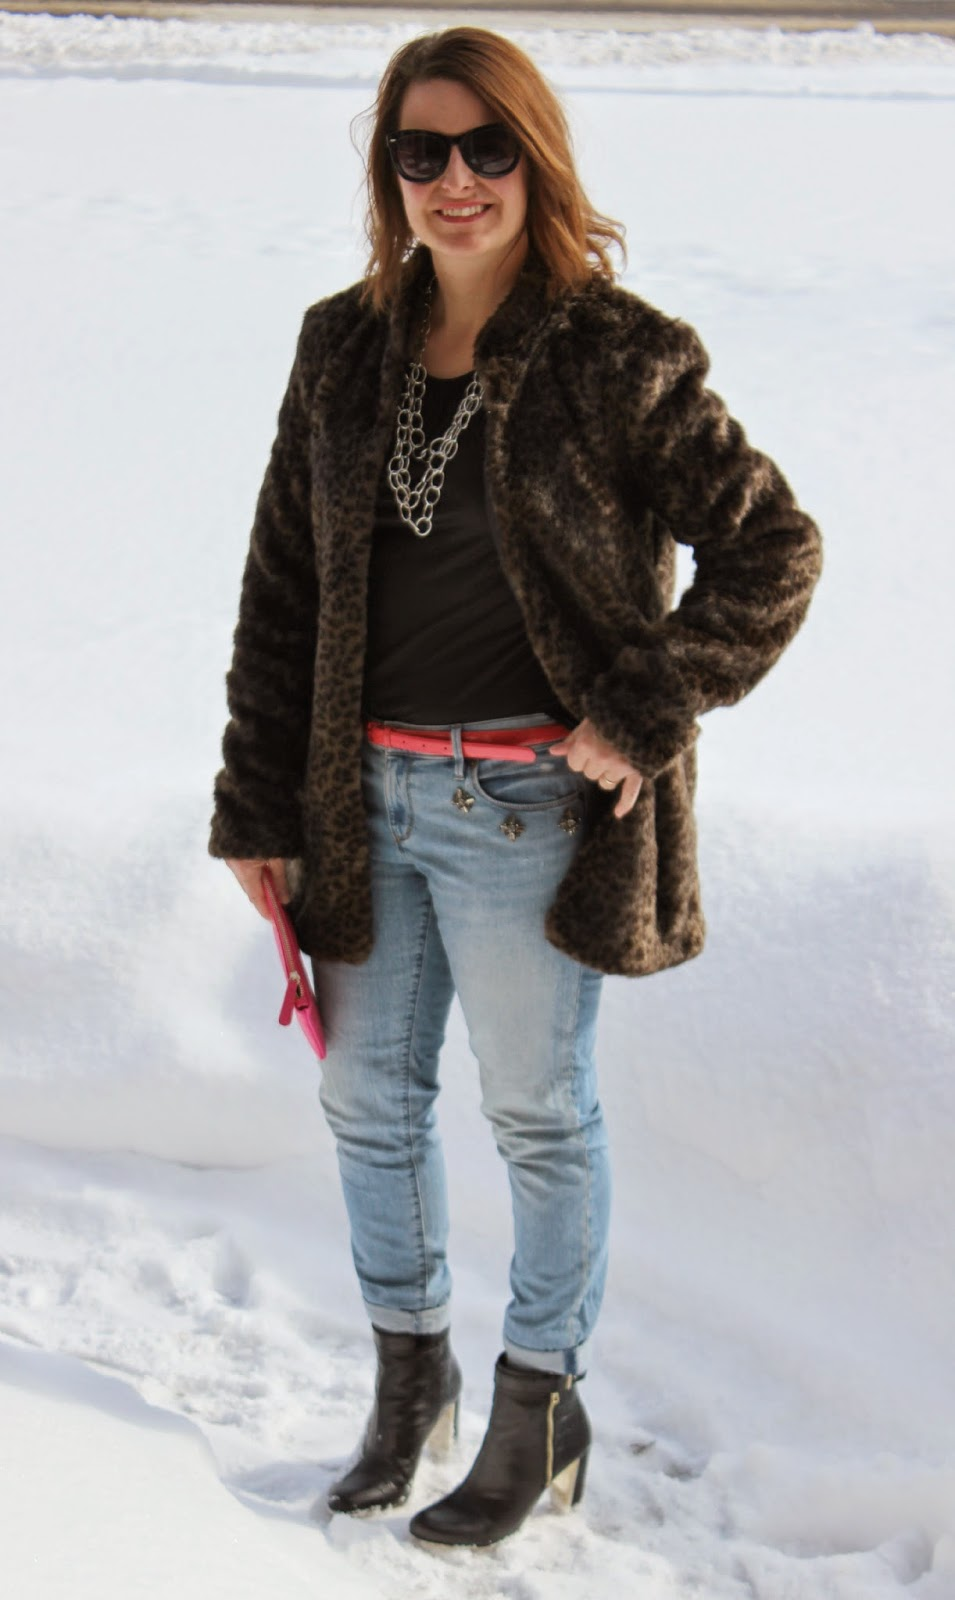 Faux Fur leopard coat jacket, jeweled jeans, snow, winter look, winter outfit, winter style